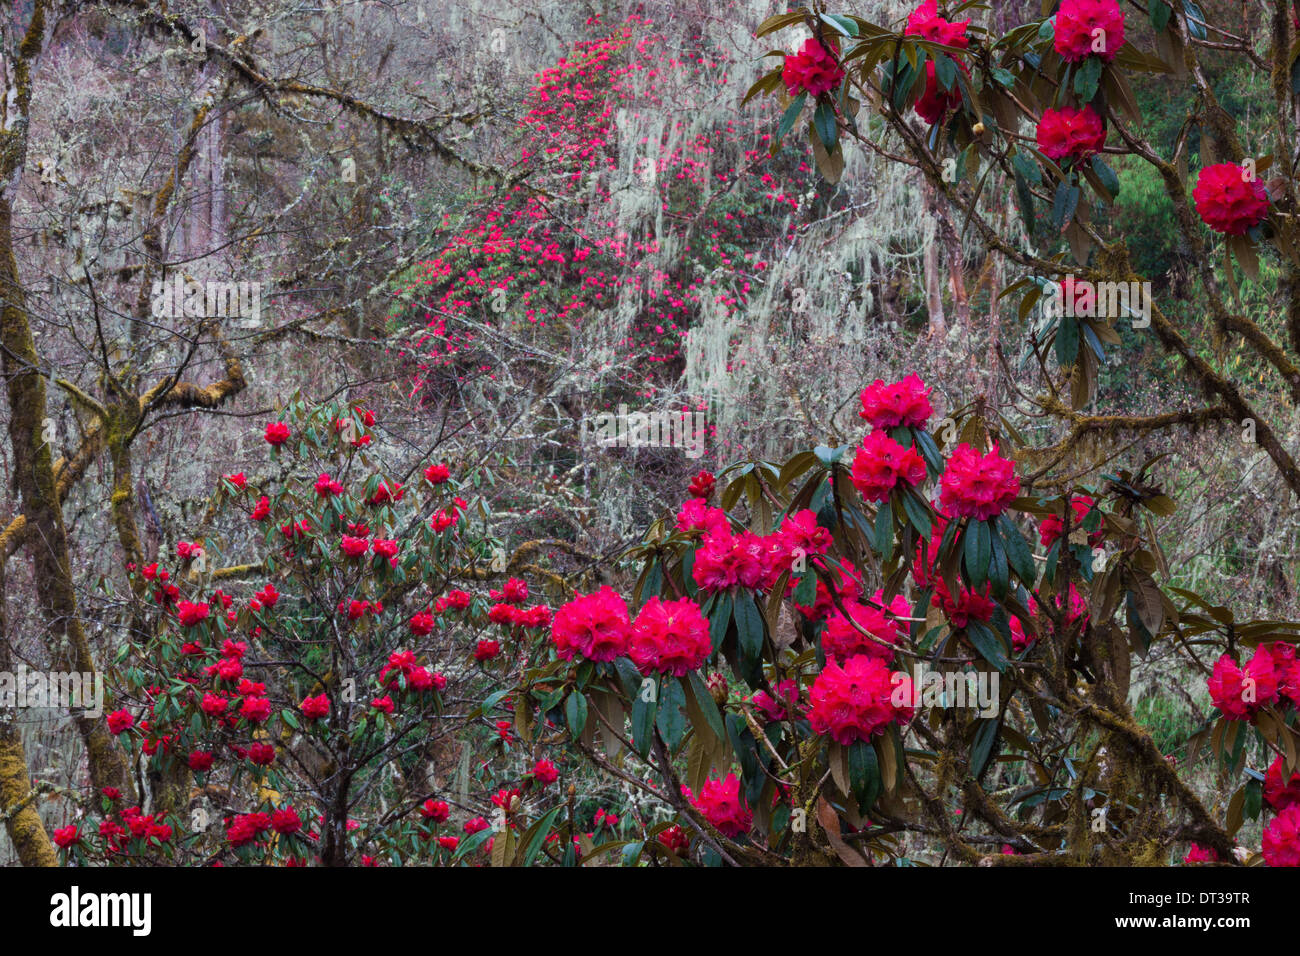 Rhododendron in bloom in the forests of Paro Valley, Bhutan - Stock Image